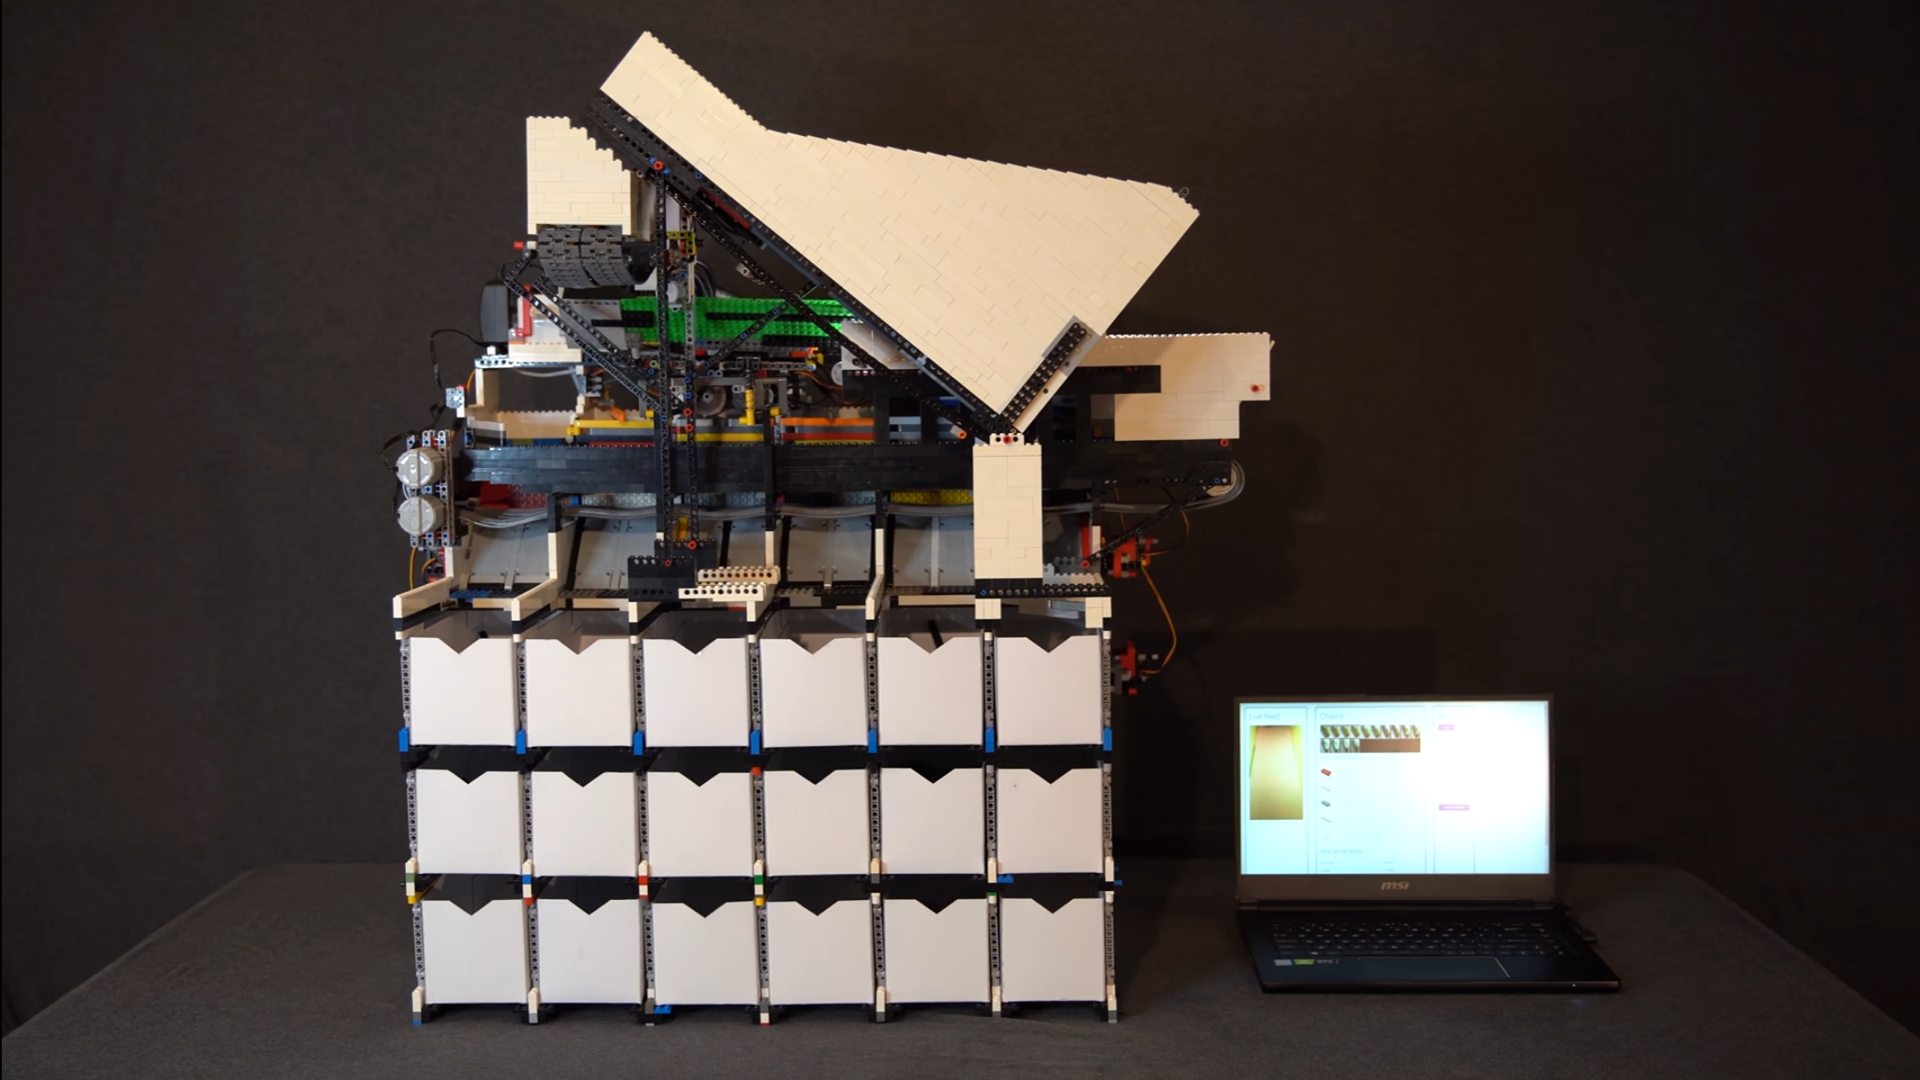 A sideview of a large LEGO sorting machine